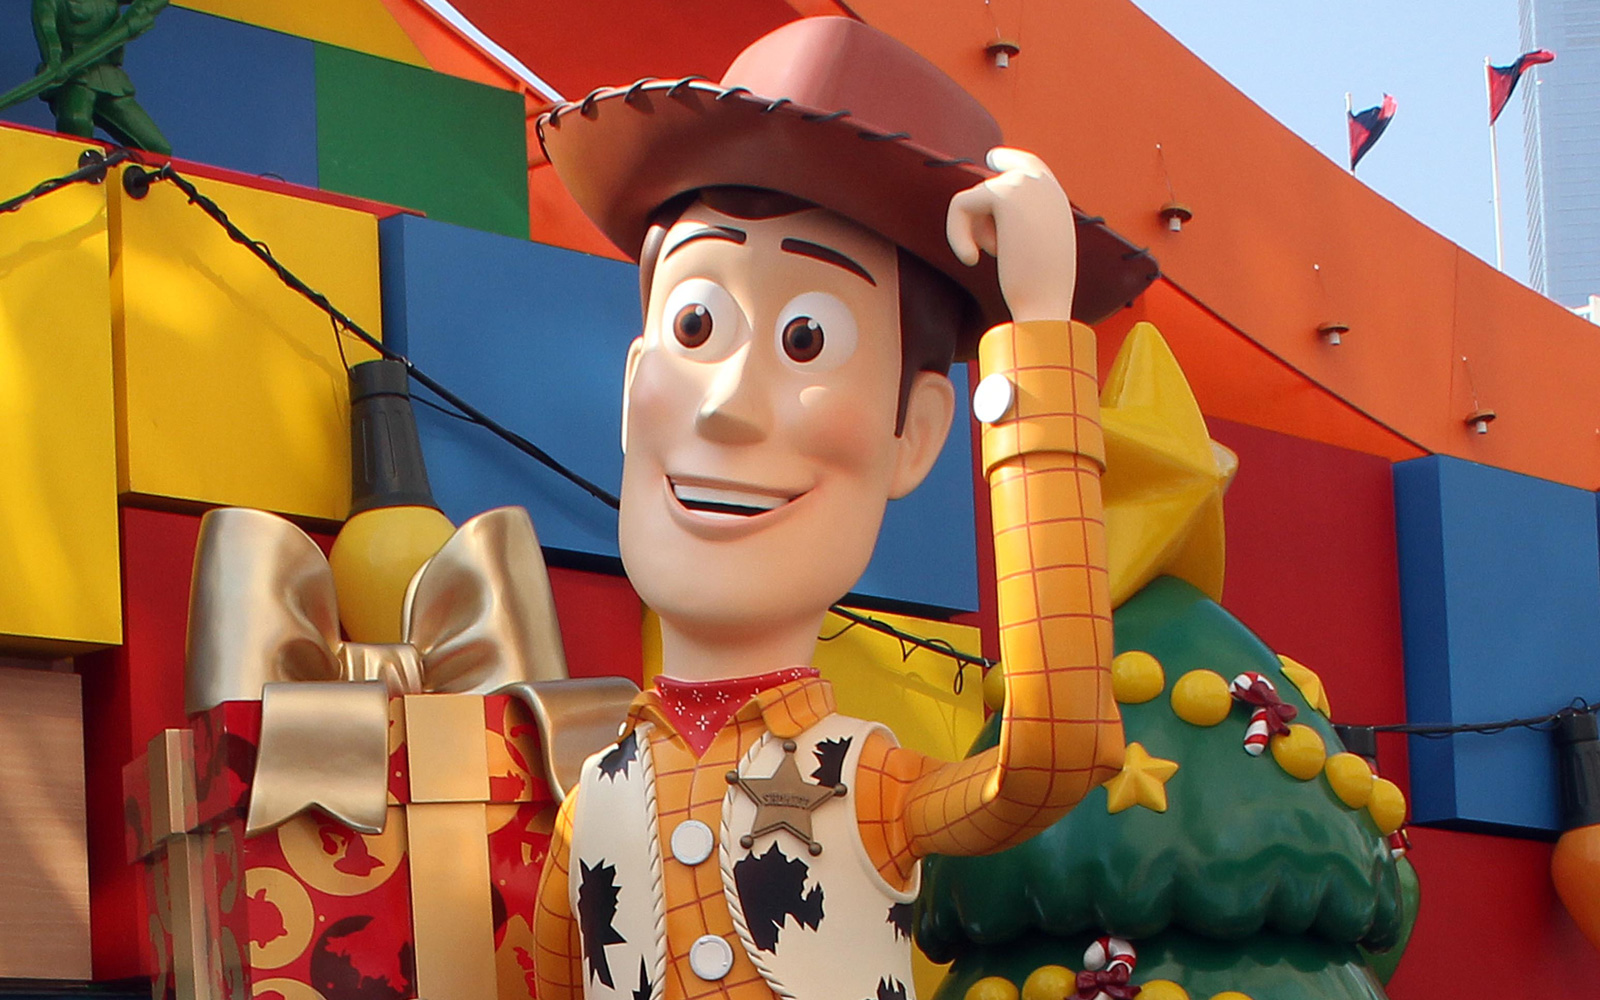 Toy Story Land Opening: What to Expect When Disney World Brings 'Toy Story' to Life